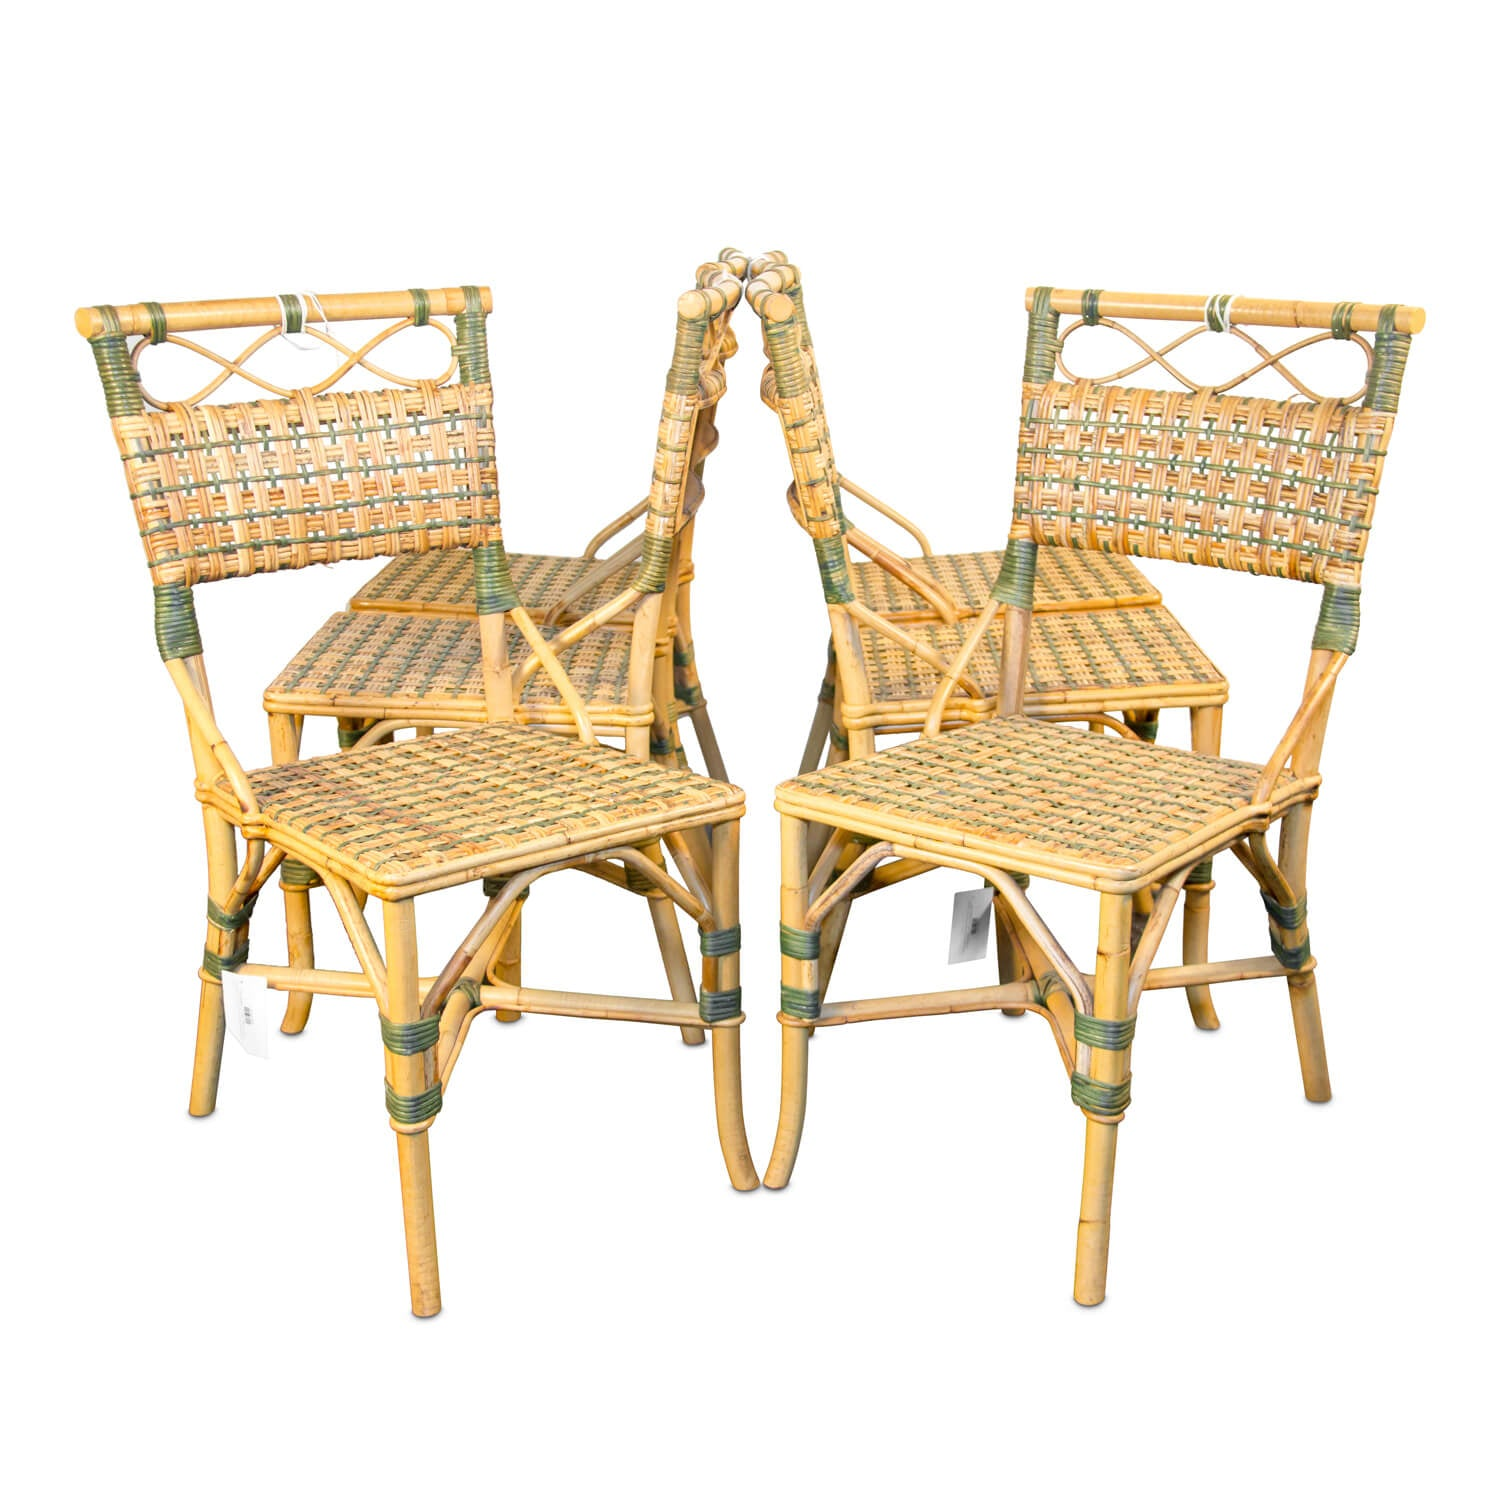 Charming Woven Rattan French Bistro Chair - Set of 6